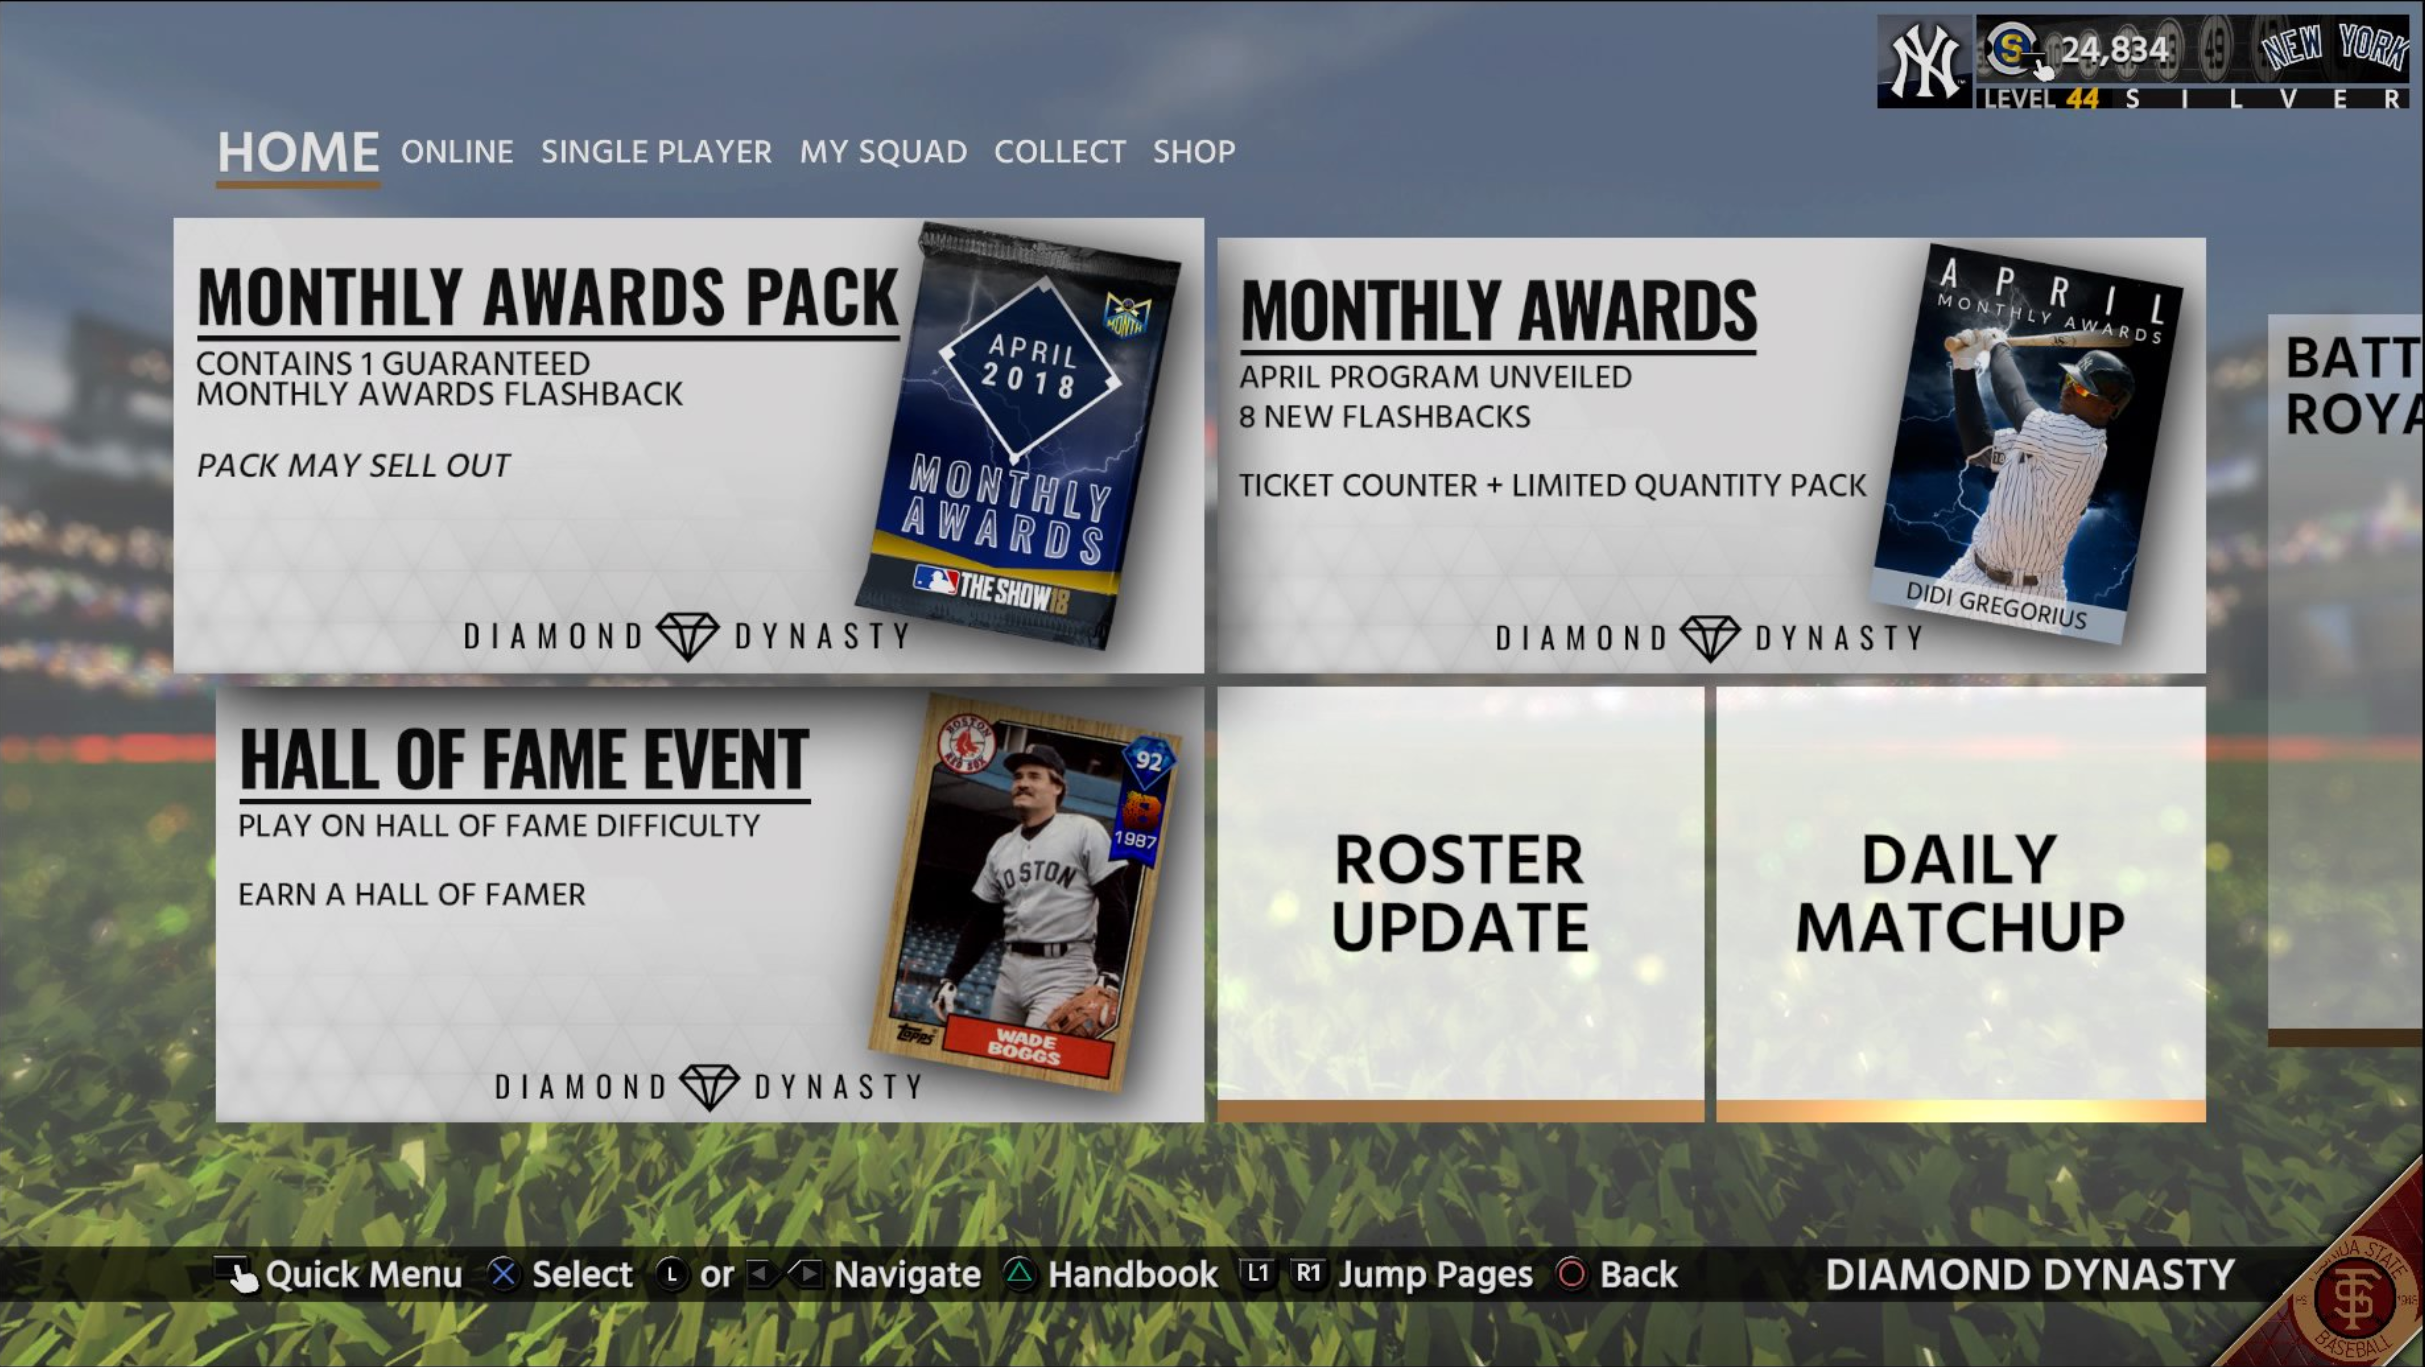 e62d3d138dde0a9857a1a3c6bb042191 - How To Get Promoted In Mlb The Show 18